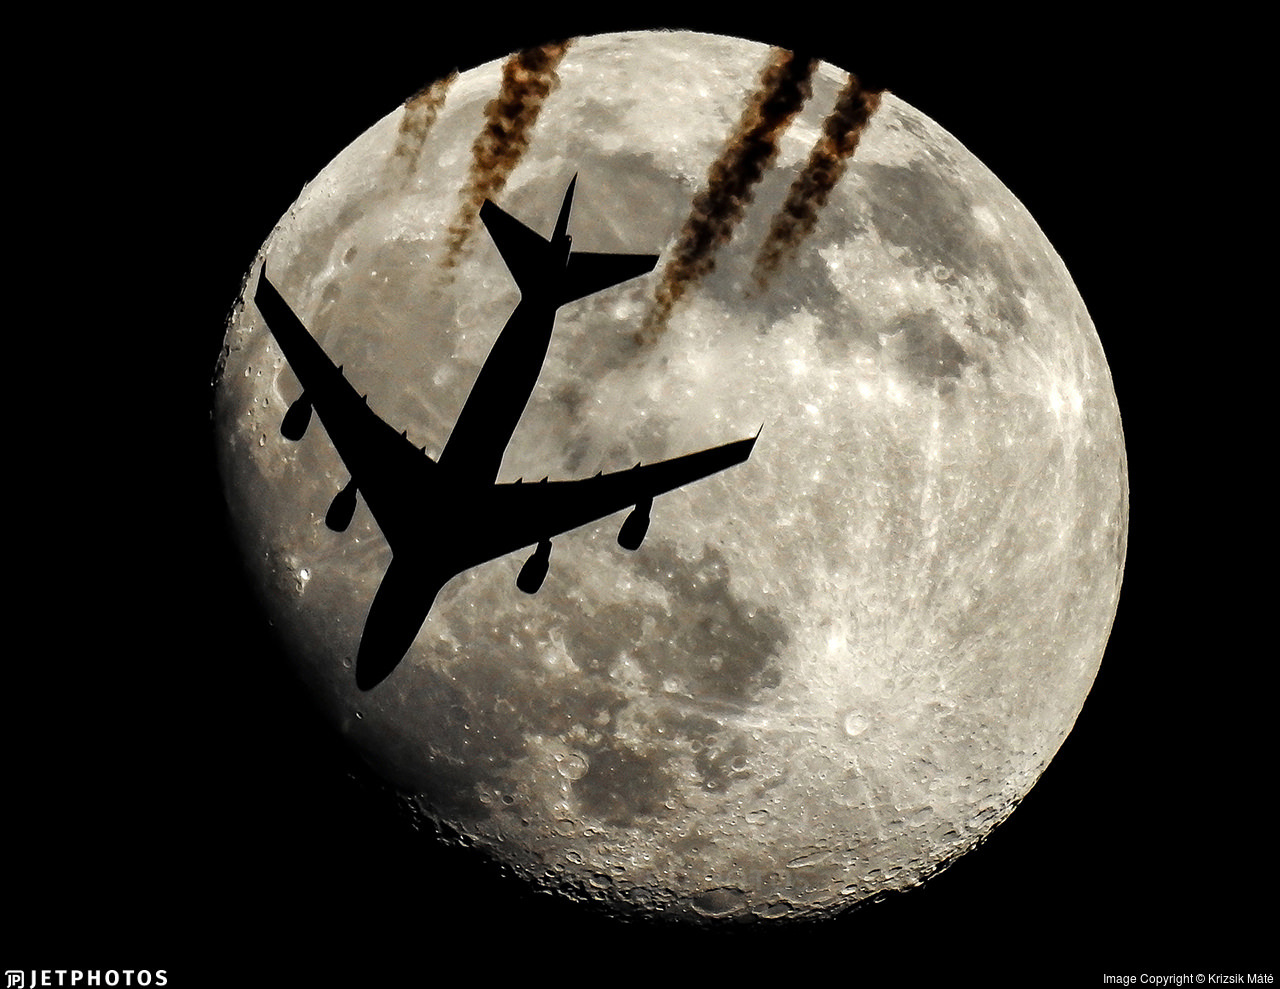 A China Airlines Cargo 747 passing in front of the moon